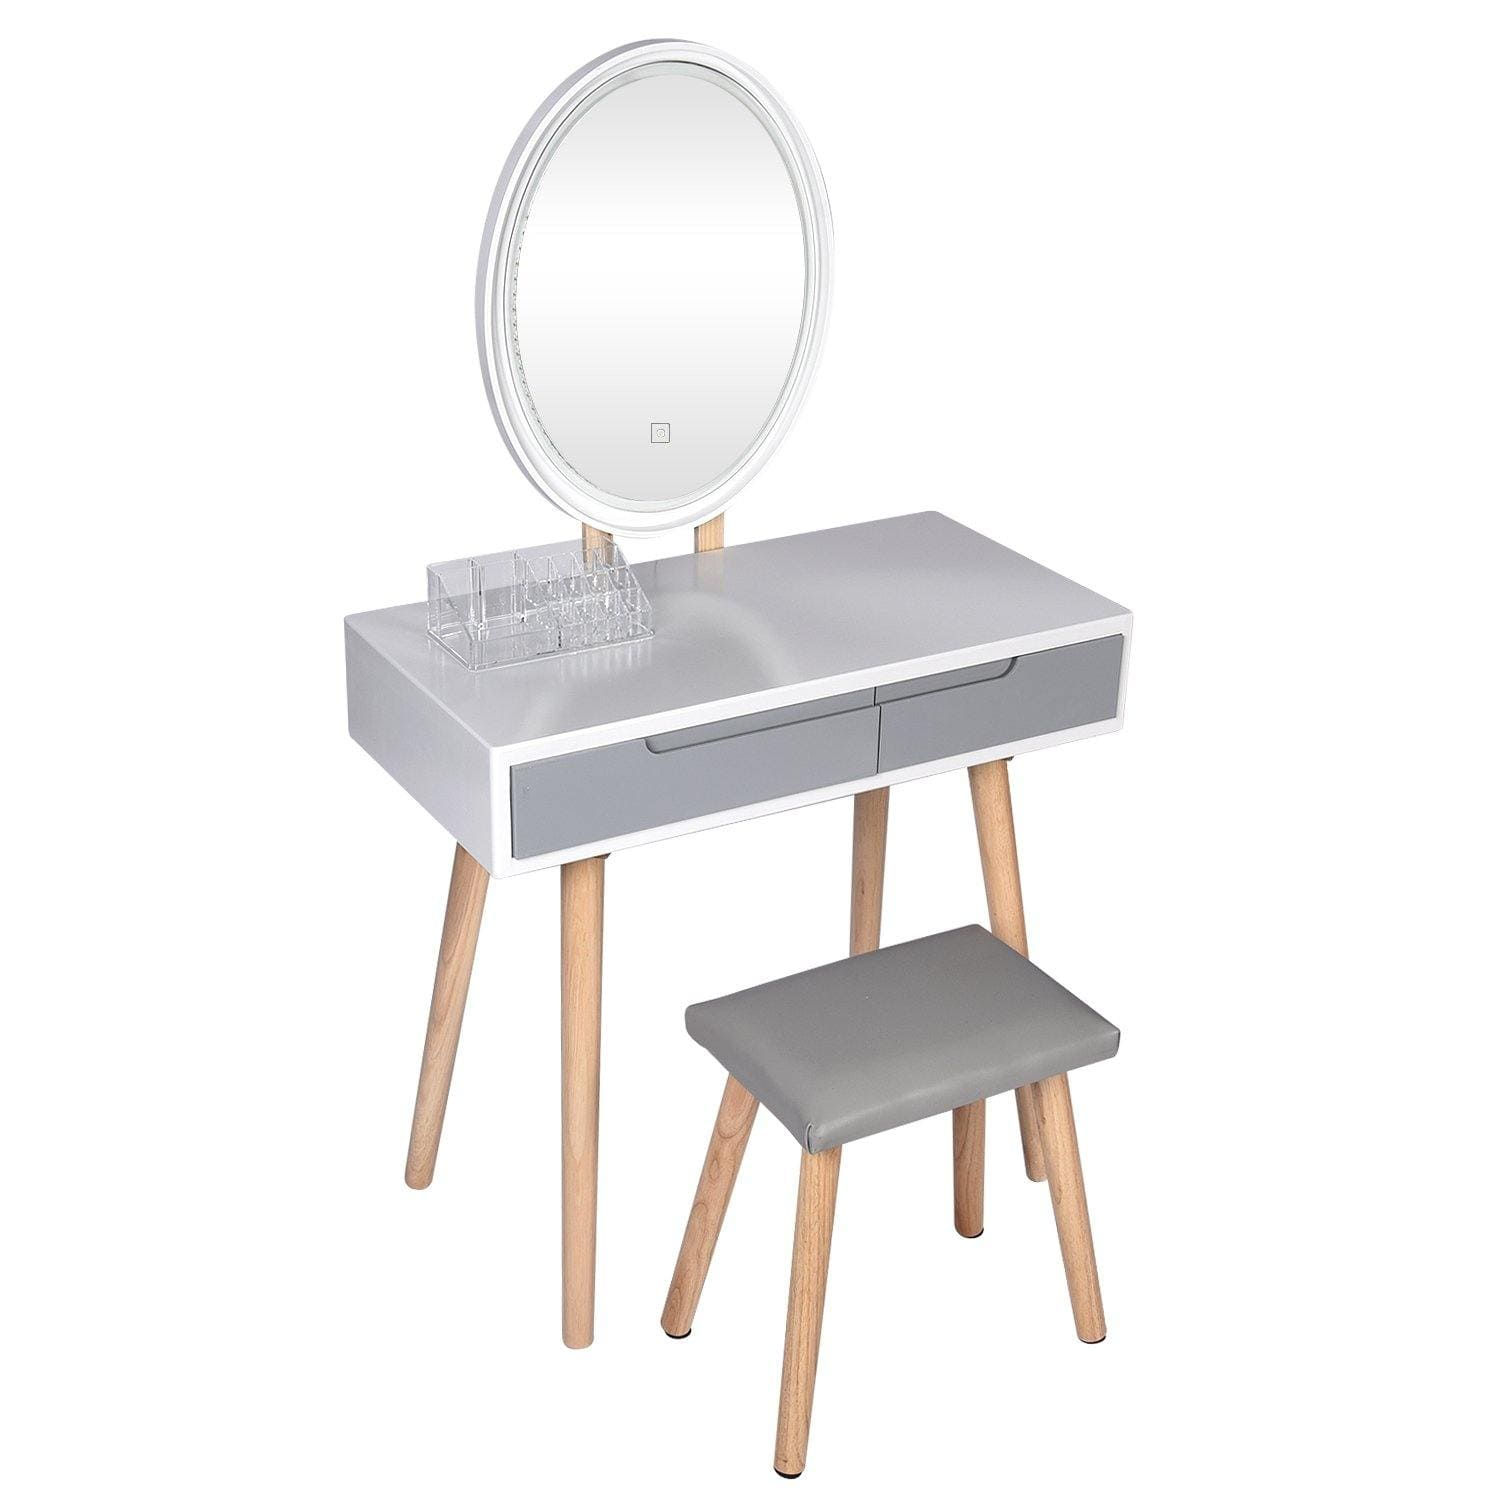 YOURLITE Vanity Table Set With Brightness Mirror (Grey)